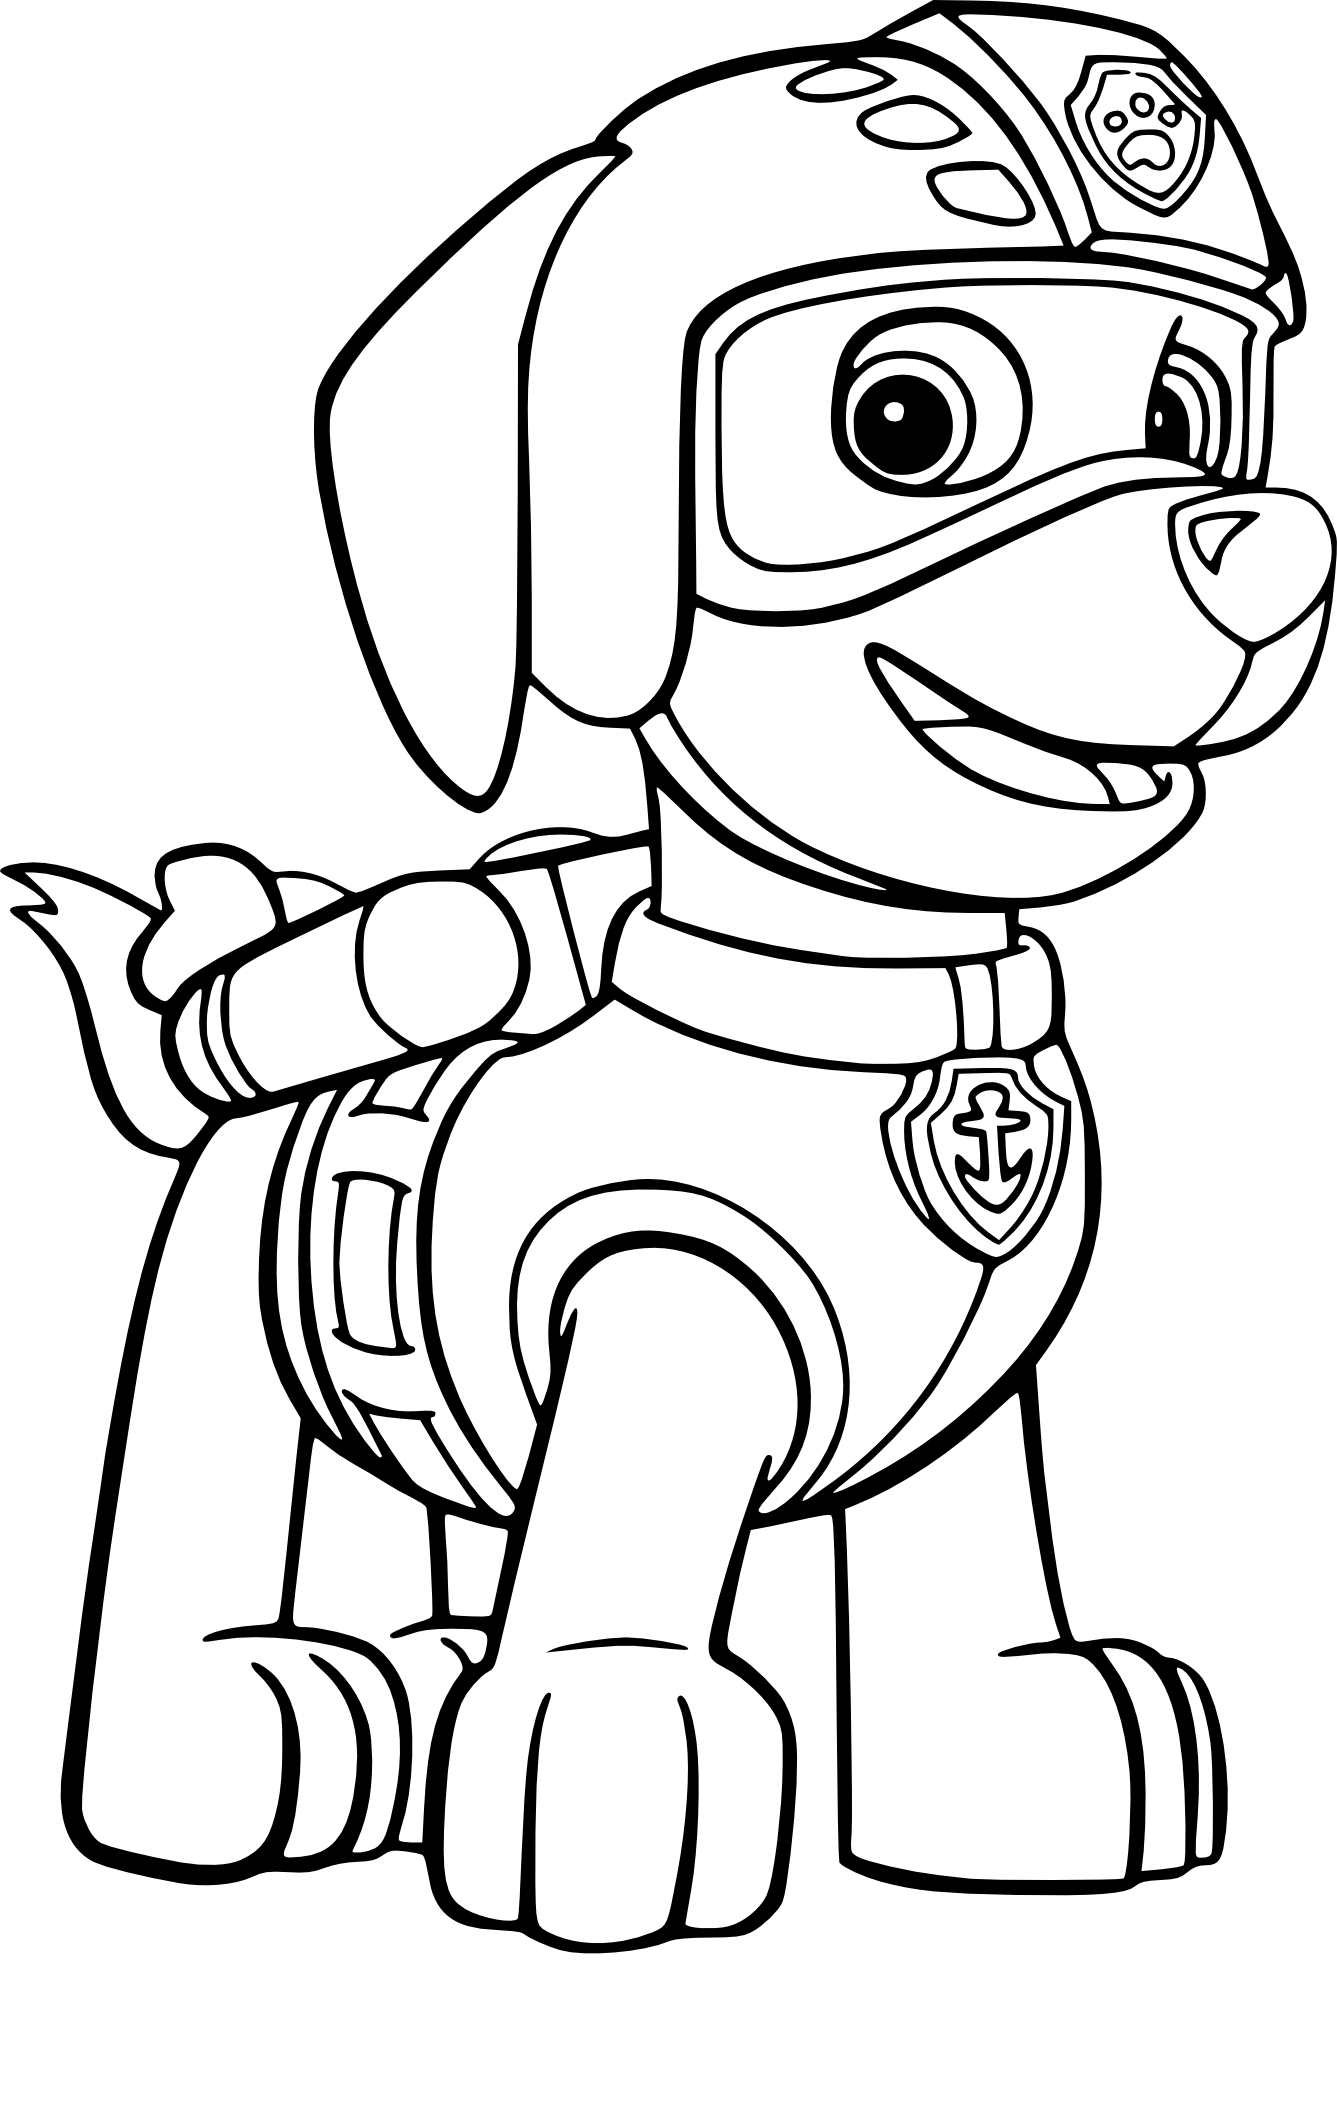 Paw Patrol Figuren Ausmalbilder : 25 Rocky Paw Patrol Coloring Page Pictures Free Coloring Pages